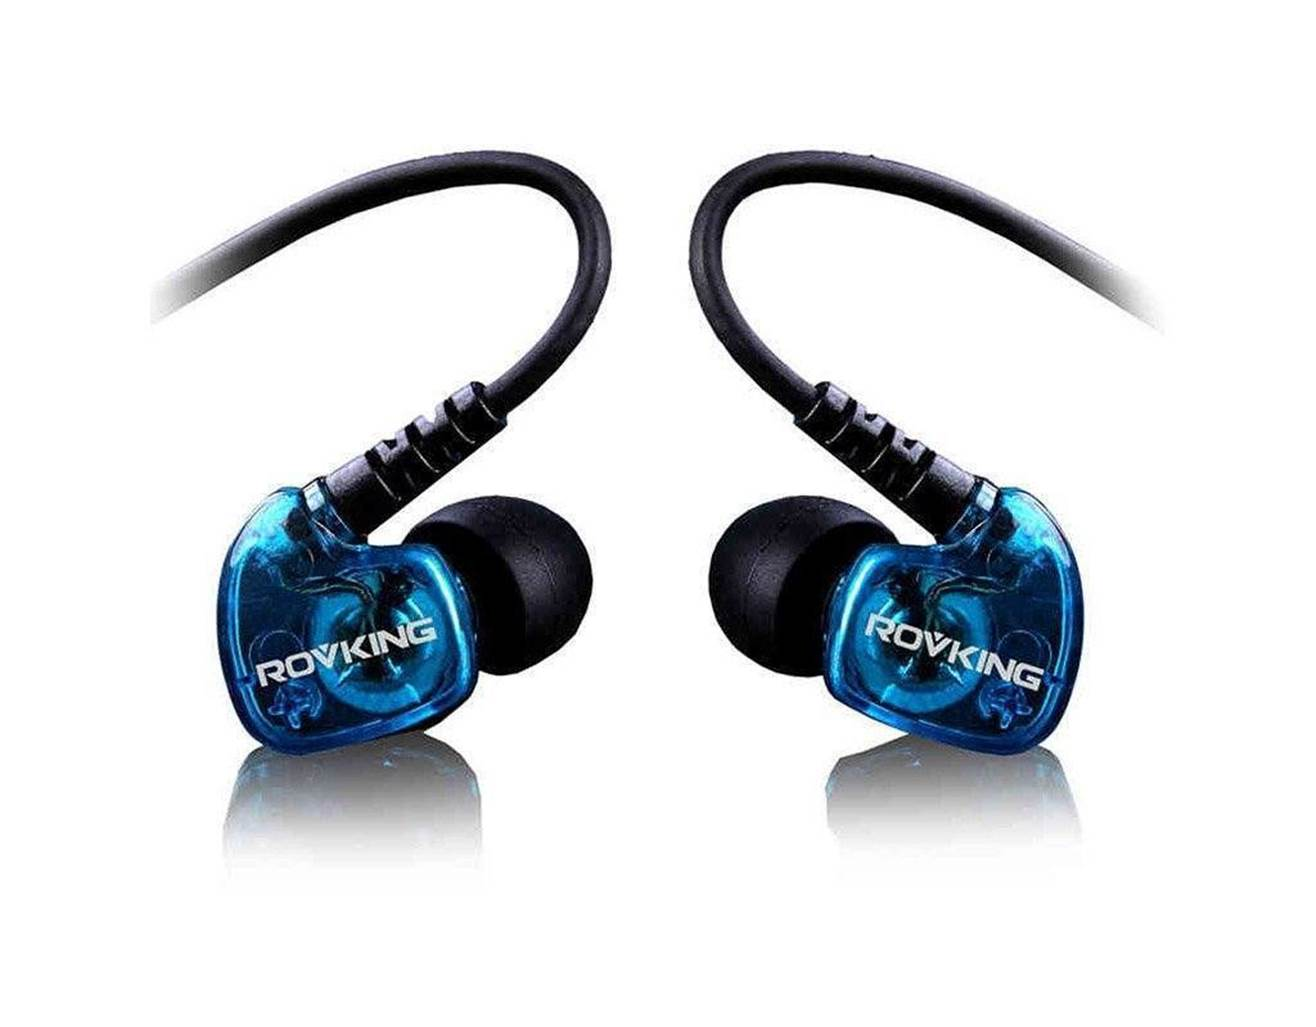 Rovking Sports In-Ear Headphones